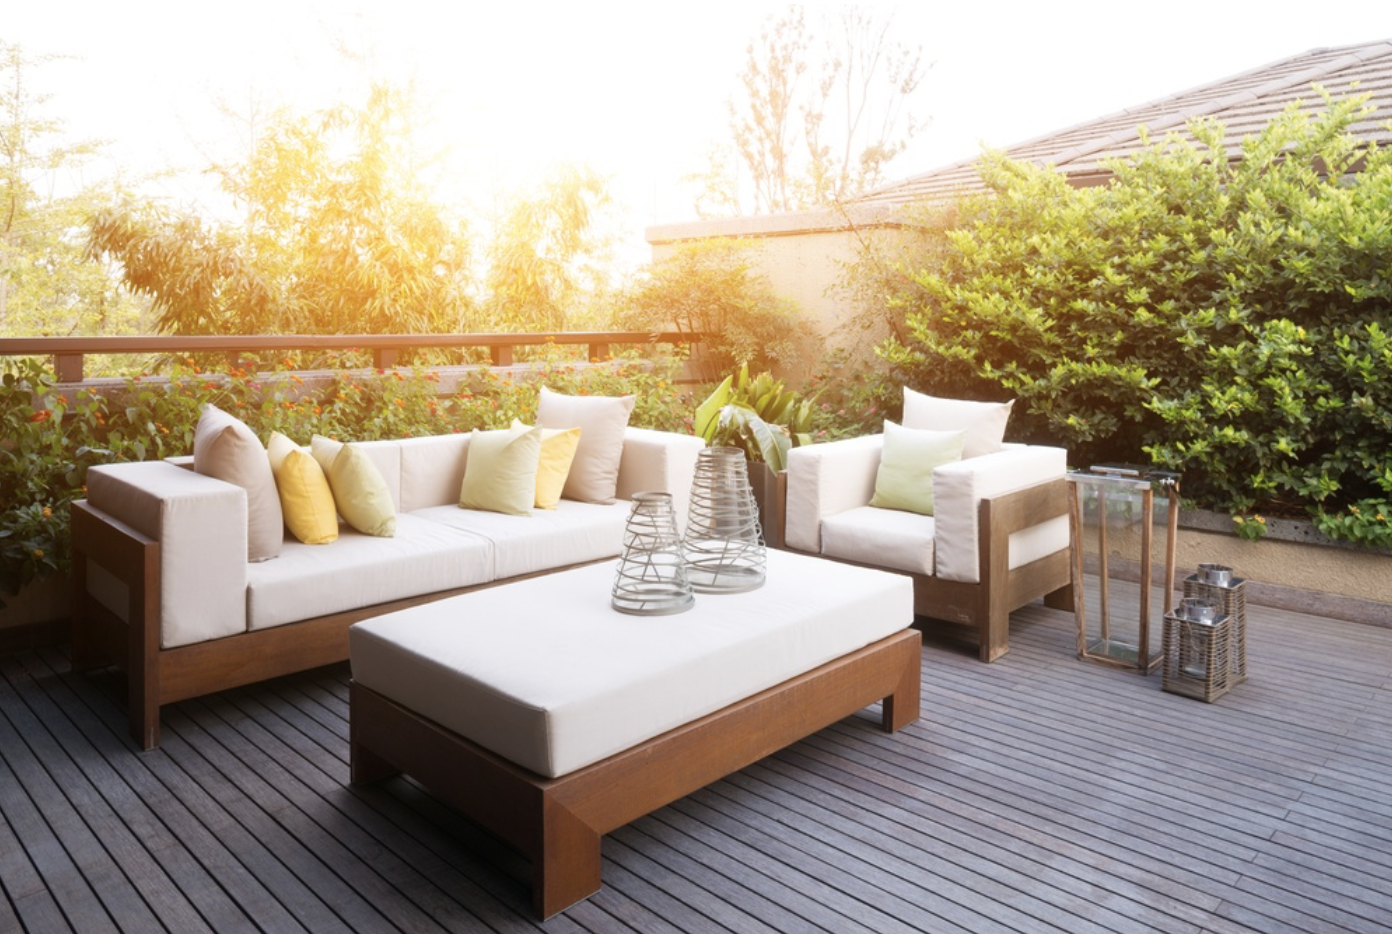 5 Creative Ways To Add Privacy To Your Deck Or Patio Wallside Windows